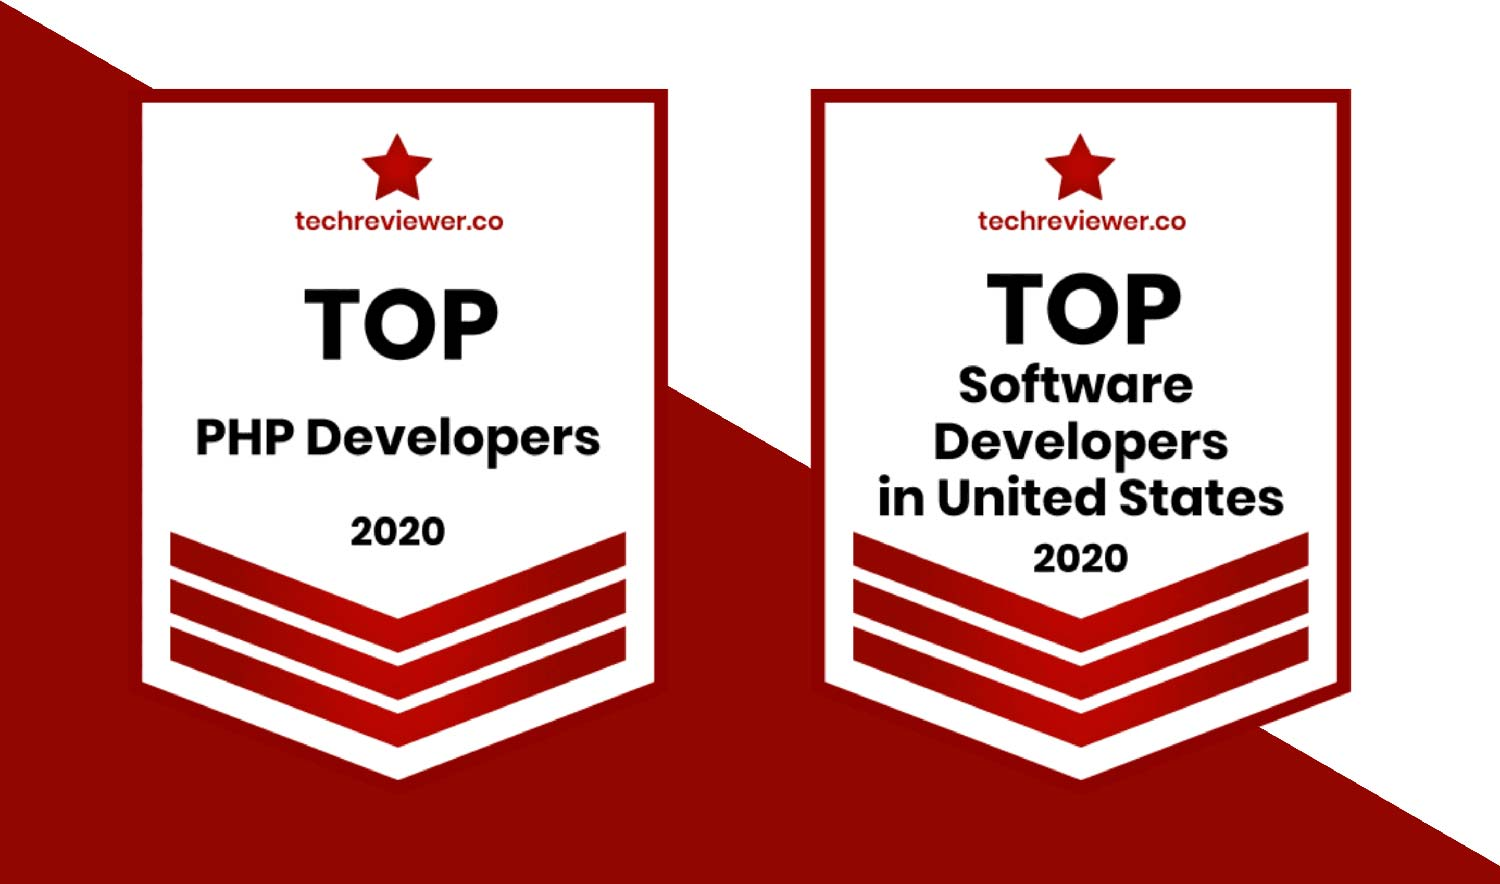 Techreviewer.co-Top Software Development Company in the U.S.and Top PHP Developers 2020 badge